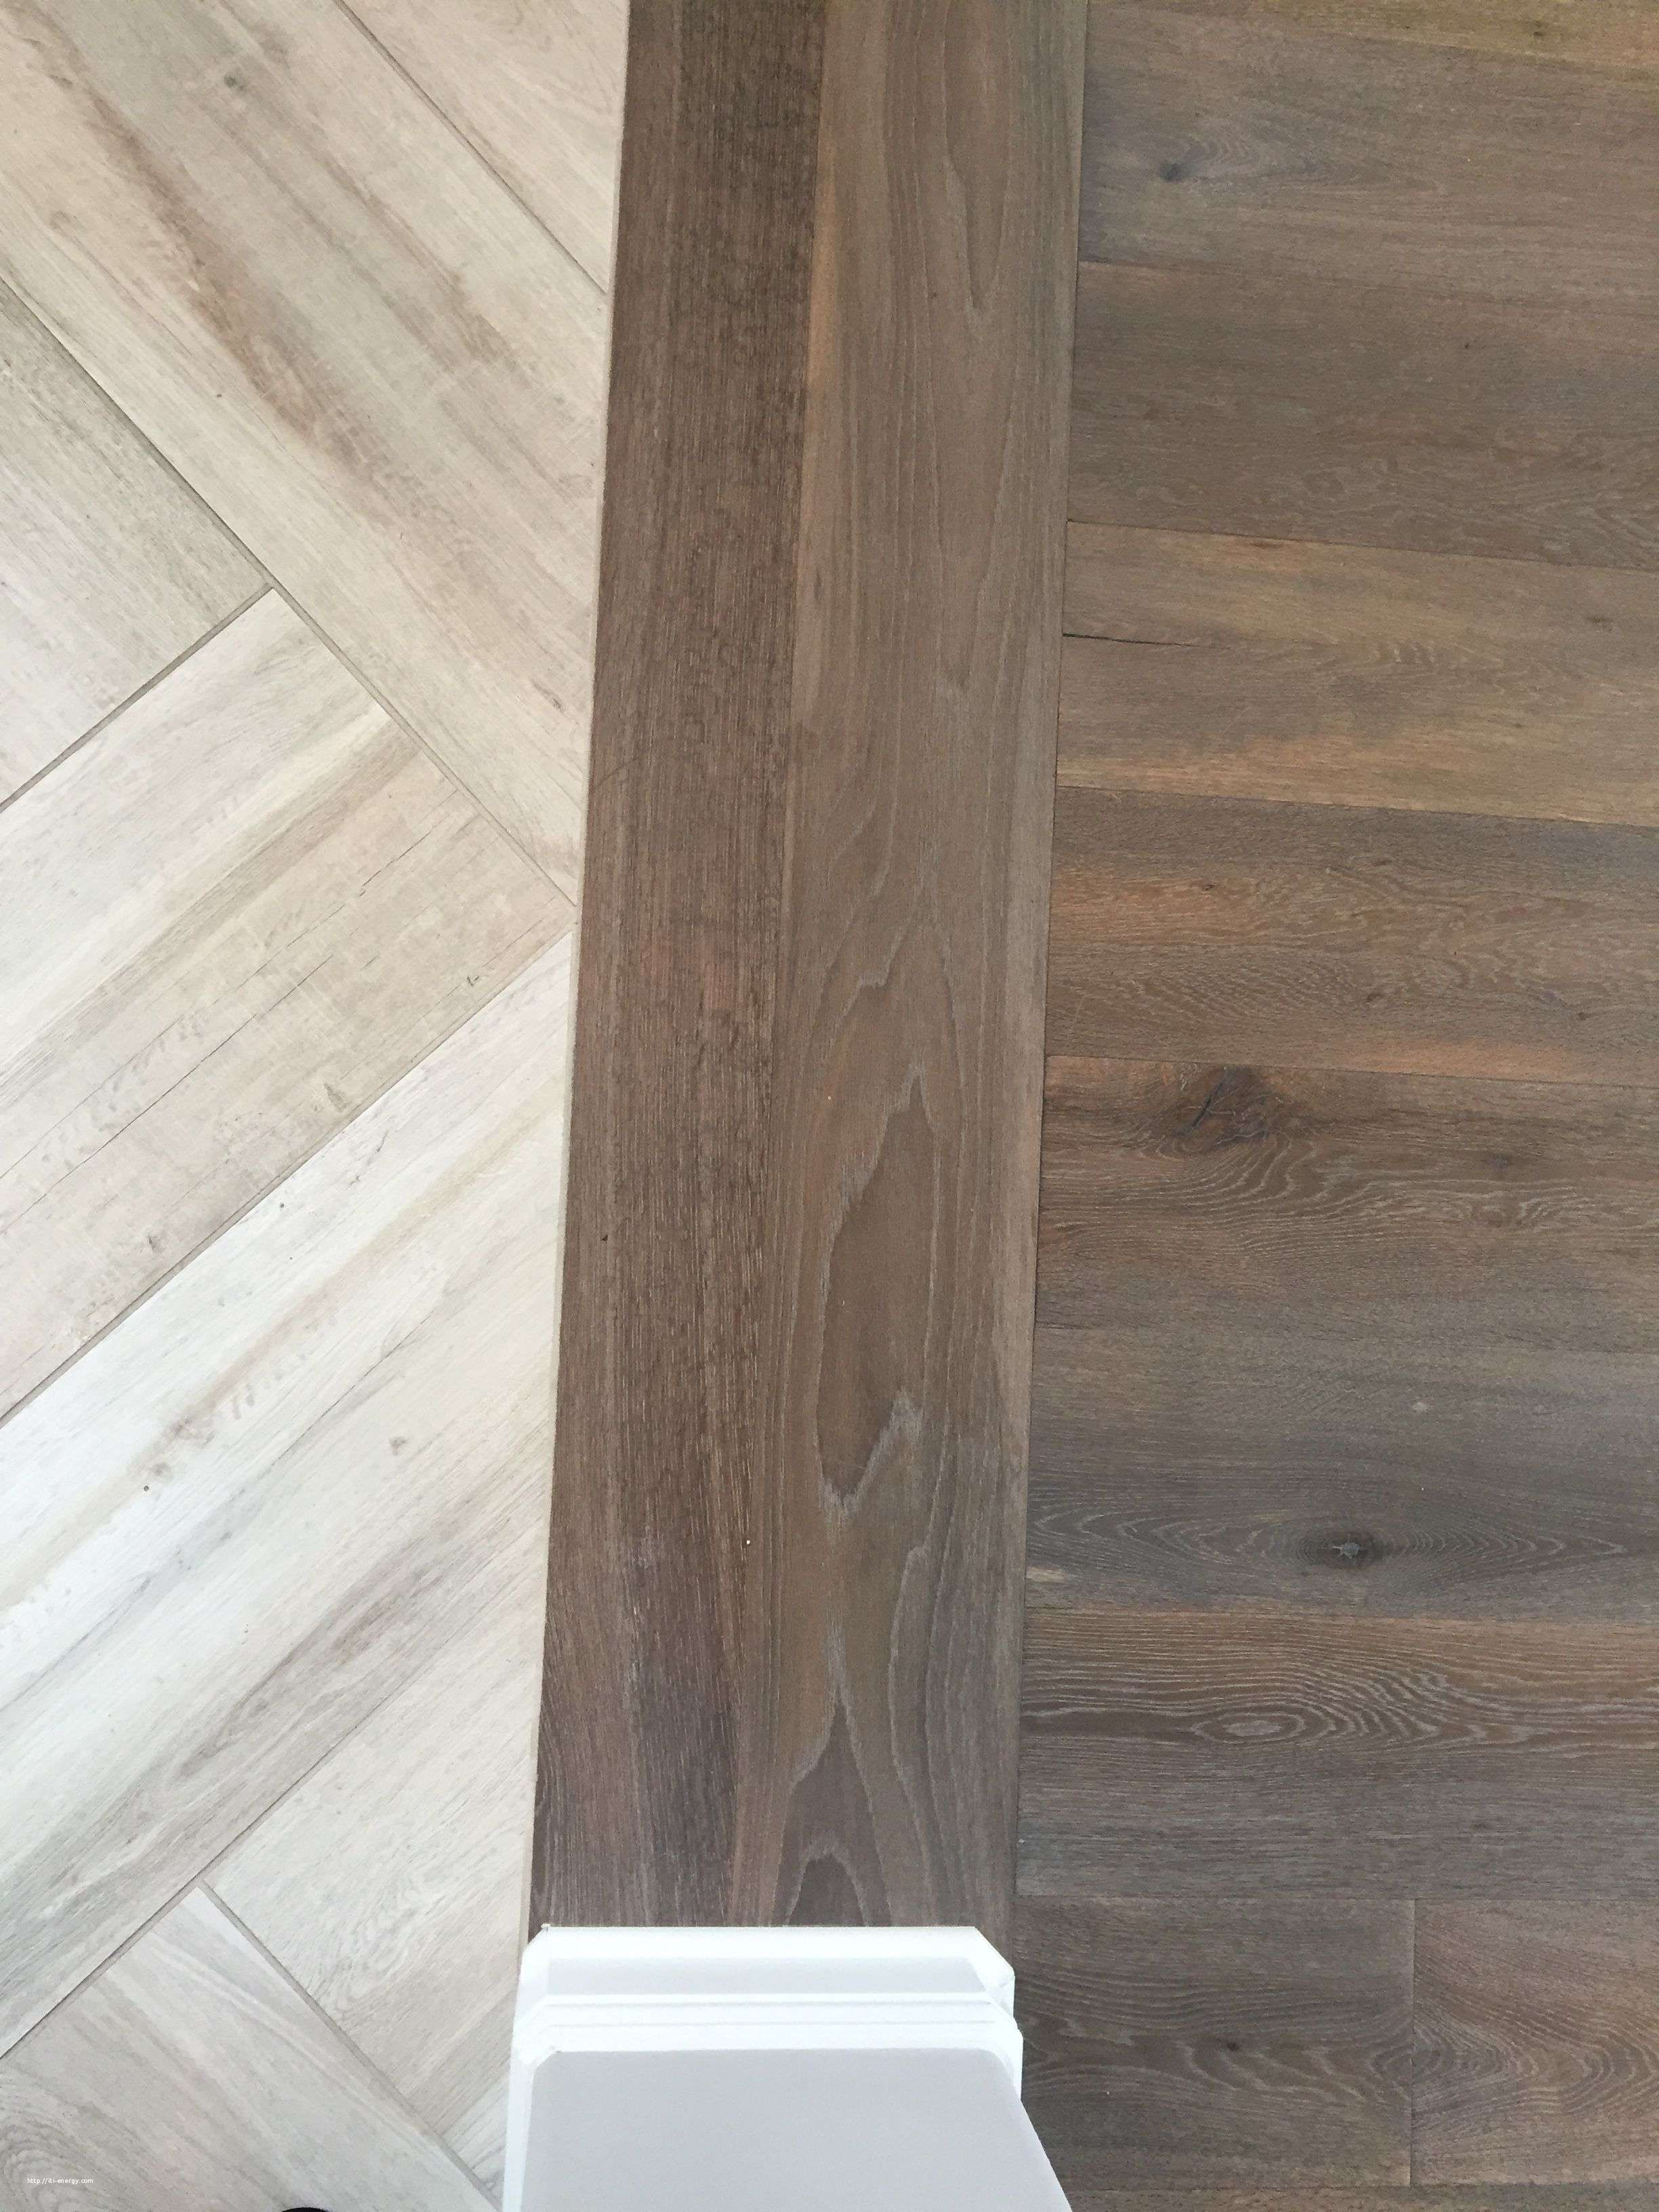 Floor Transition Laminate To Herringbone Tile Pattern